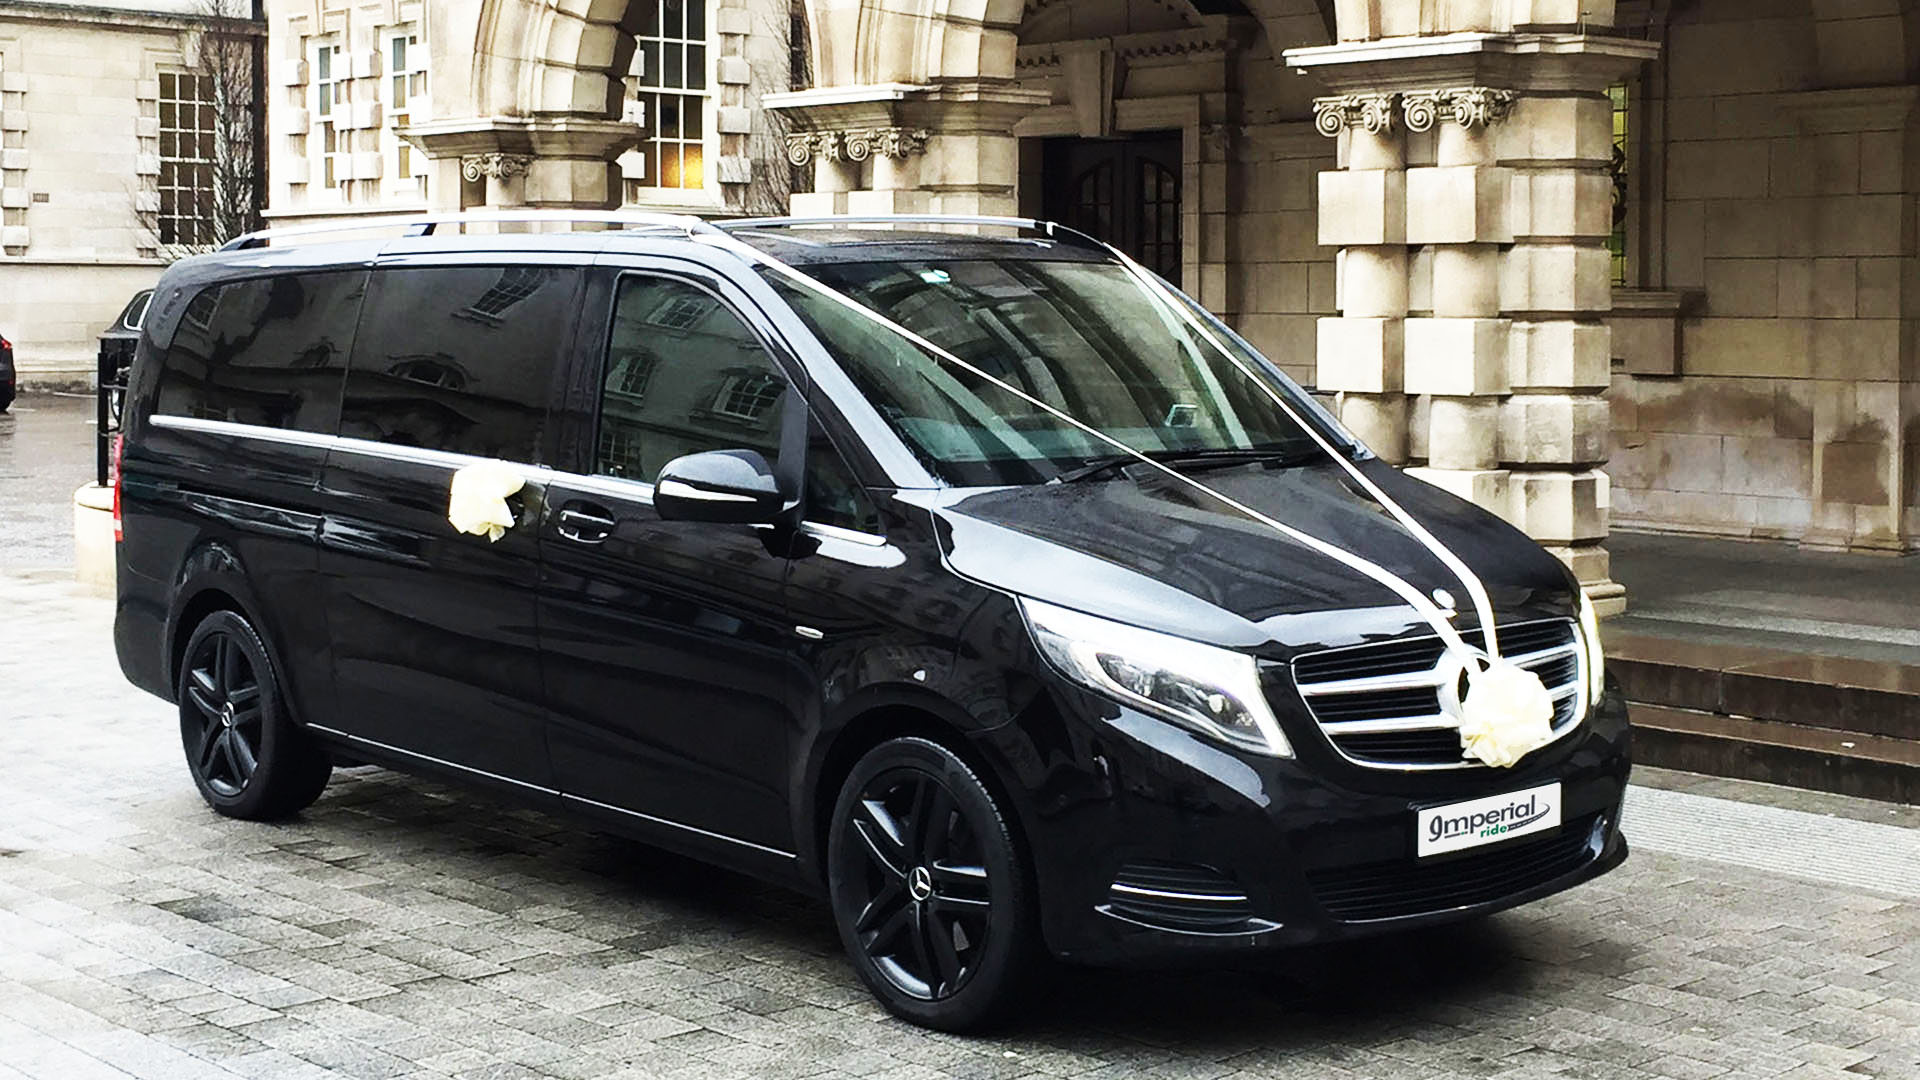 v-class-wedding-hire-in-croydon